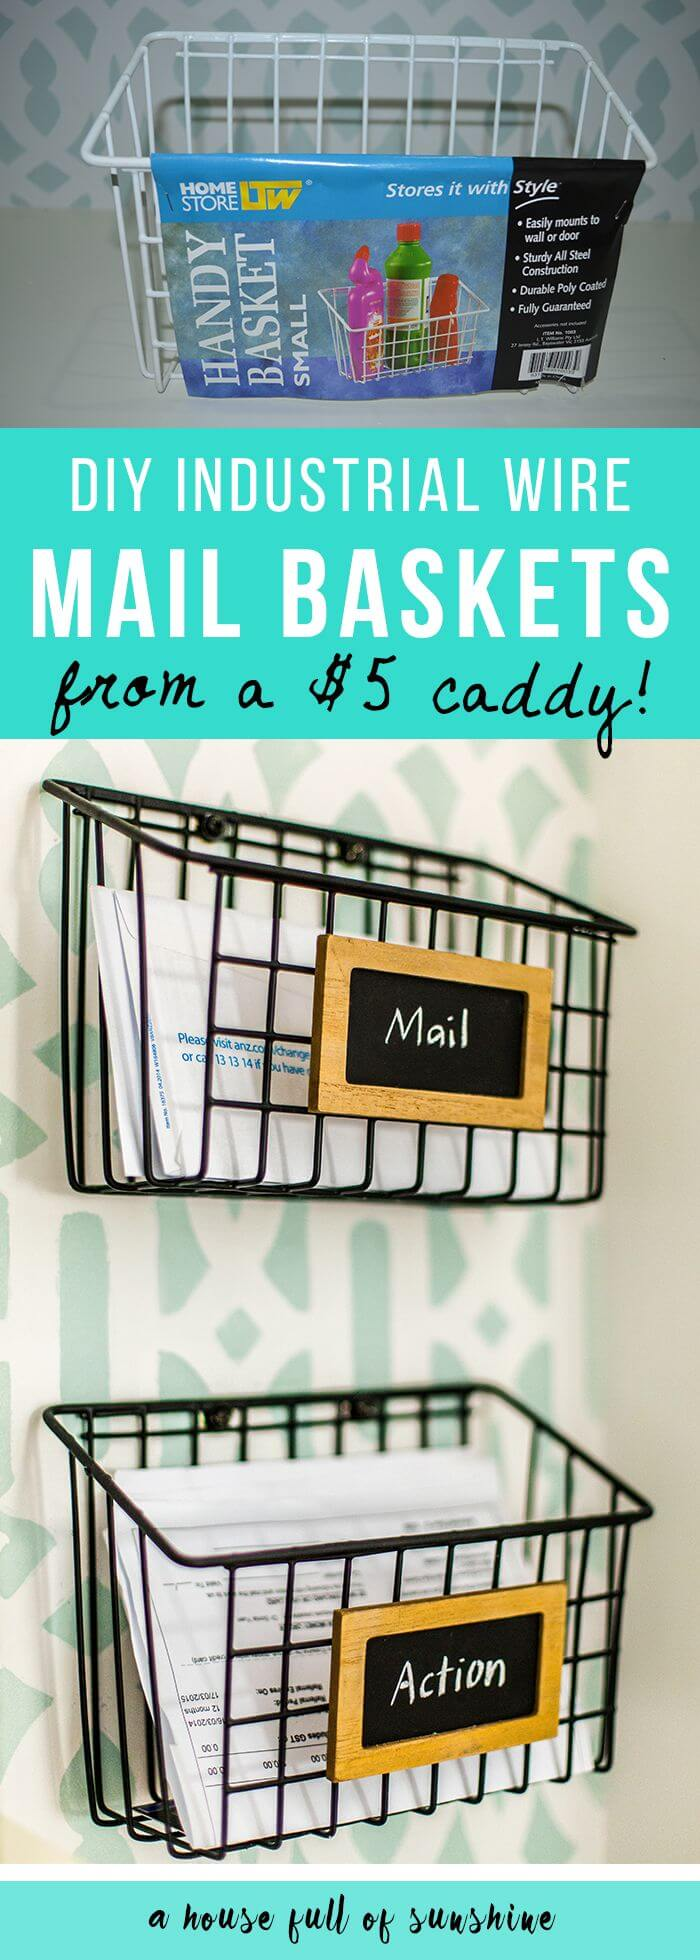 $5 DIY Mail Sorting Baskets